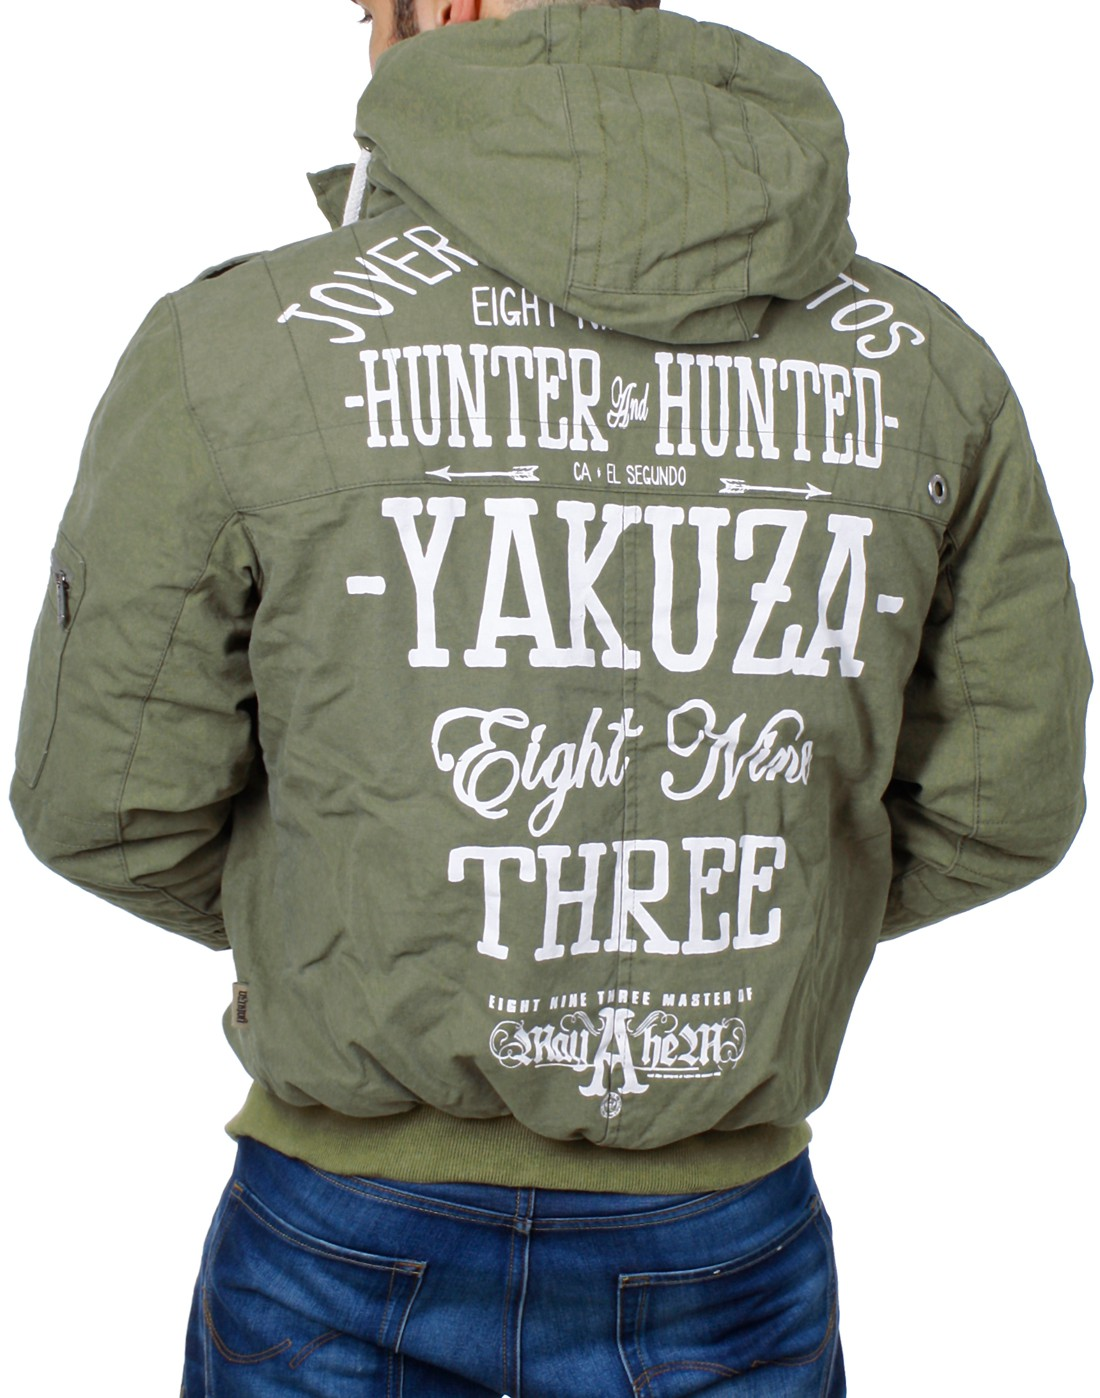 yakuza herren winter jacke bomberjacke hunter and hunted. Black Bedroom Furniture Sets. Home Design Ideas